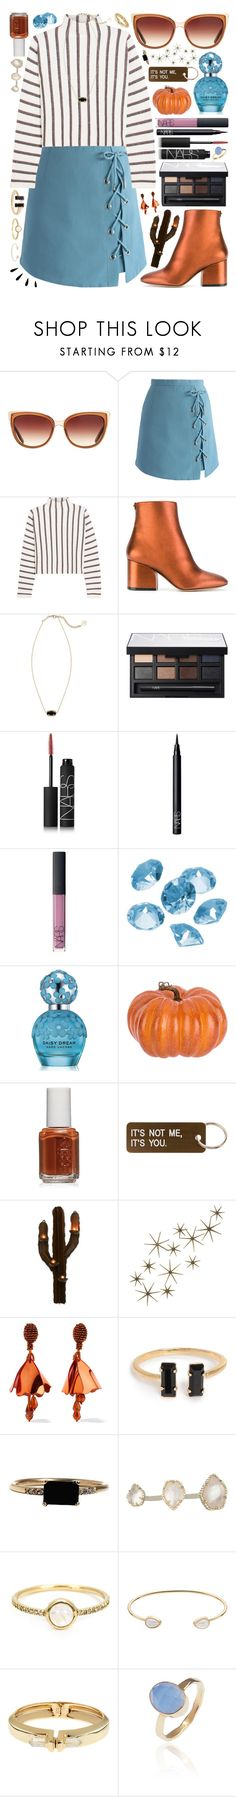 """""""{ocean blue eyes, looking in mine}"""" by kk-purpleprincess ❤ liked on Polyvore featuring Barton Perreira, Chicwish, Maje, Salvatore Ferragamo, Kendra Scott, NARS Cosmetics, Blue La Rue, Marc Jacobs, Essie and Various Projects"""